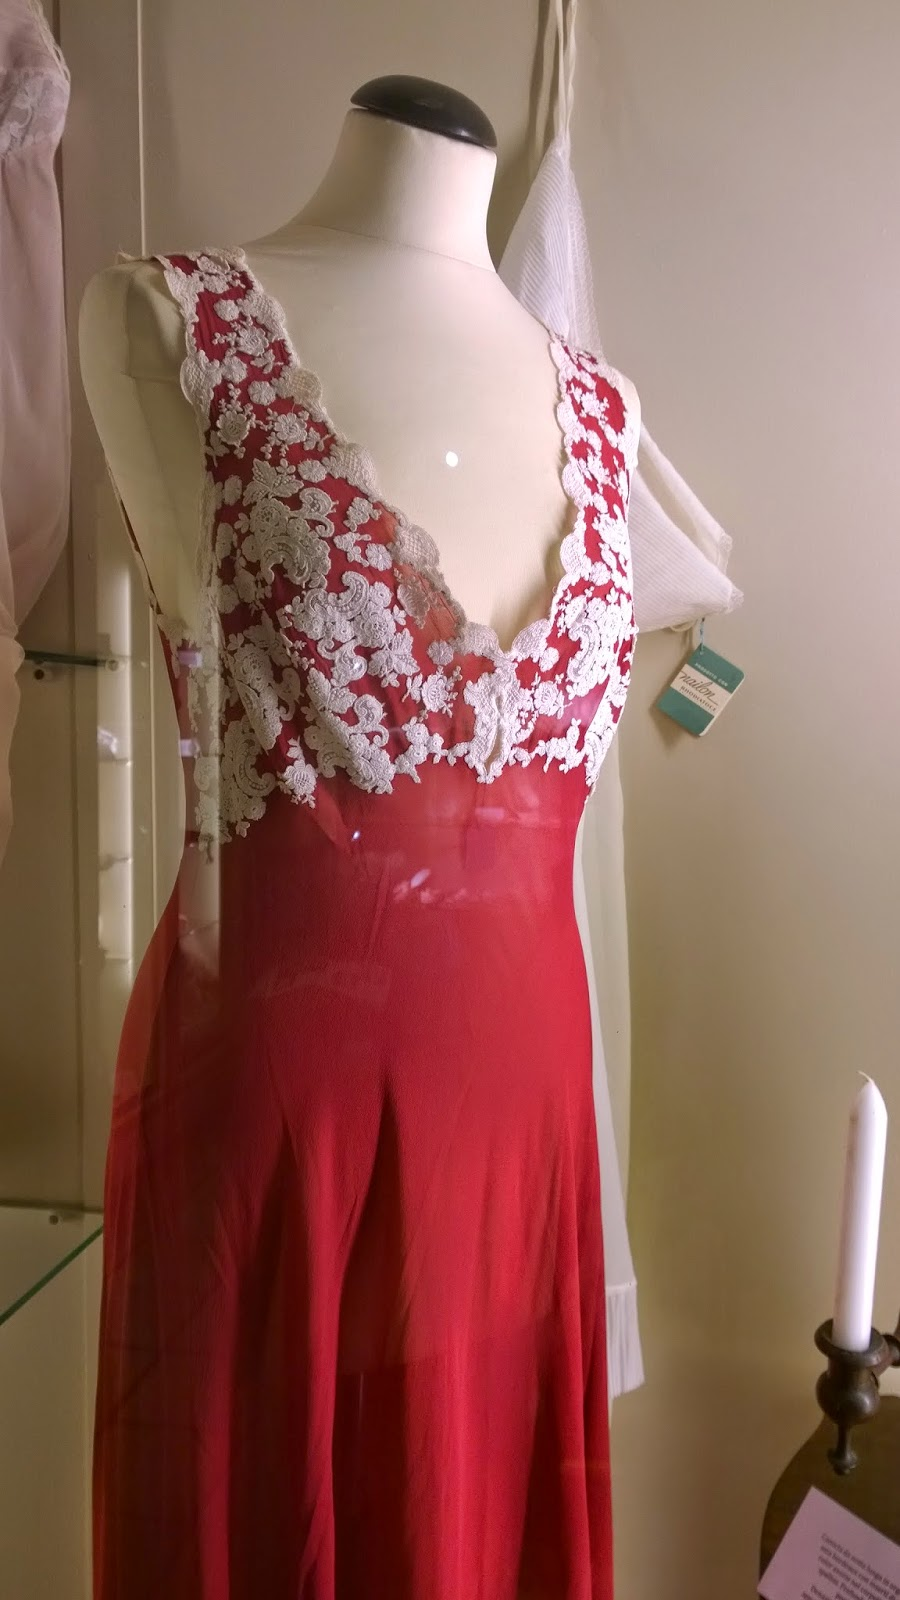 Red night gown with lace applications